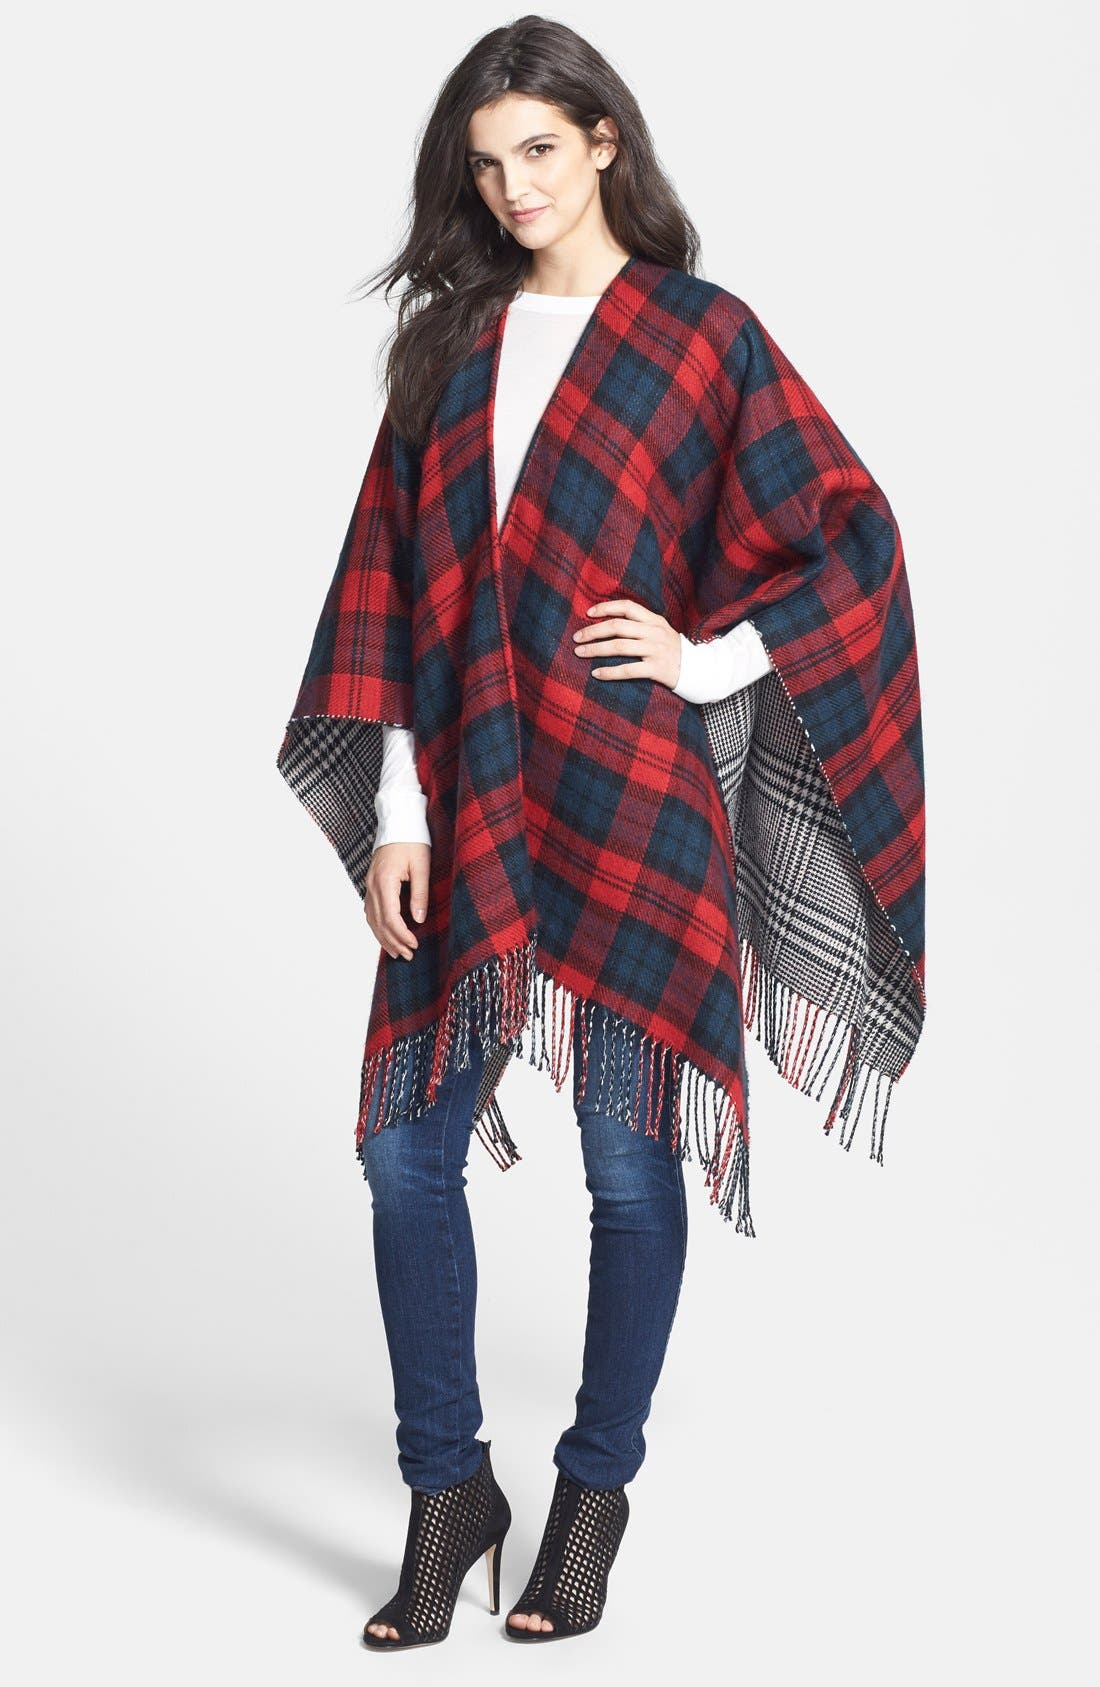 Alternate Image 1 Selected - Accessory Street 'Double Plaid' Reversible Ruana